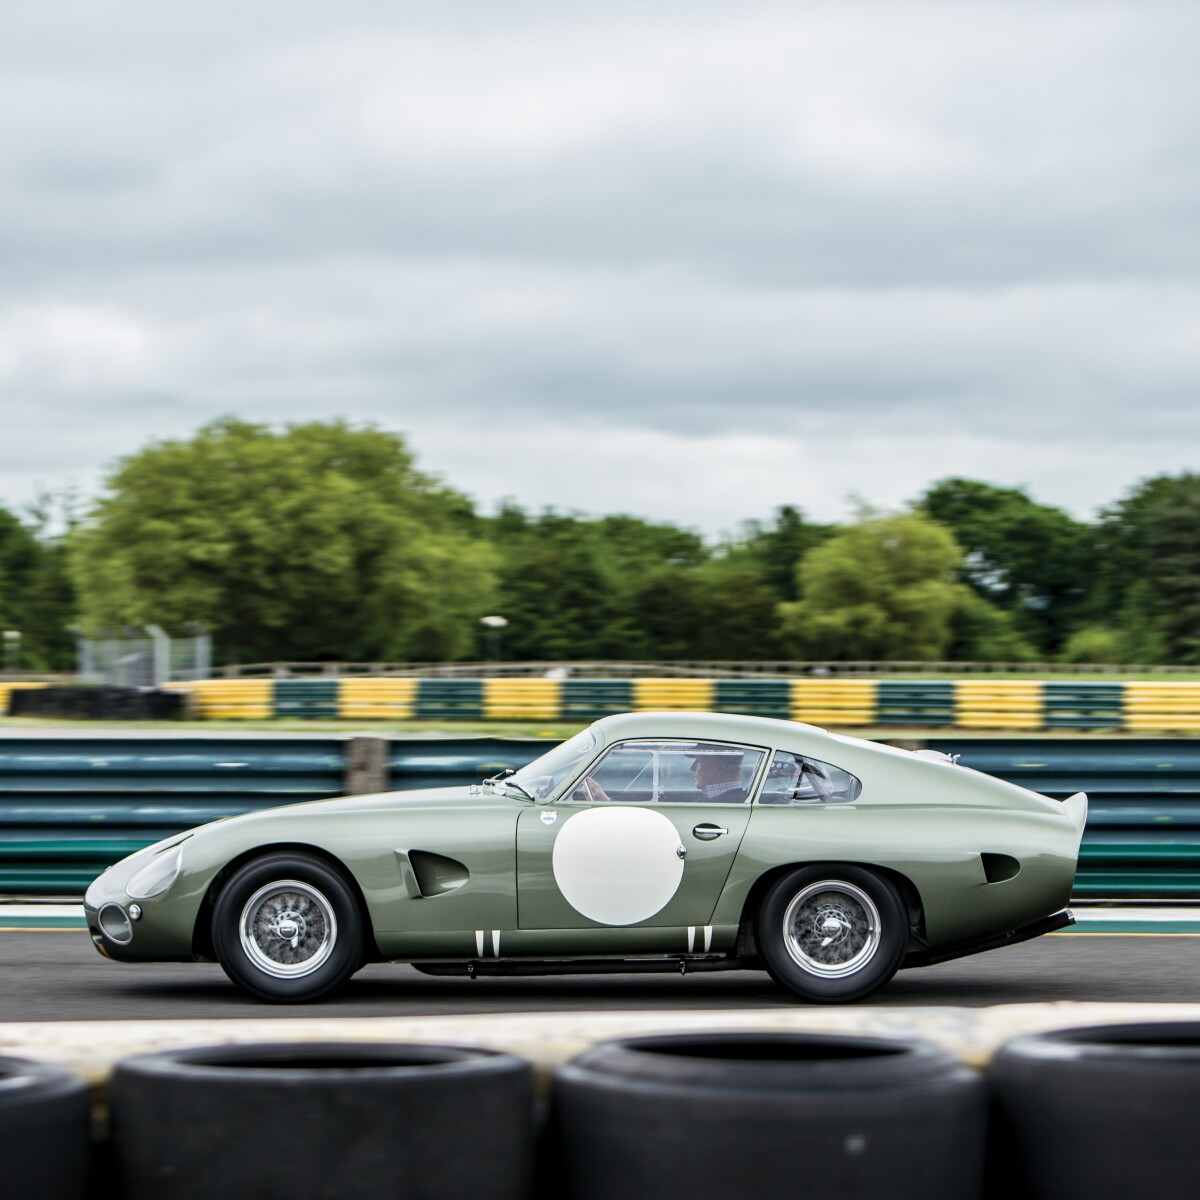 The Legendary Aston Martin DP Prototype Automobiles - Aston martin restoration project for sale